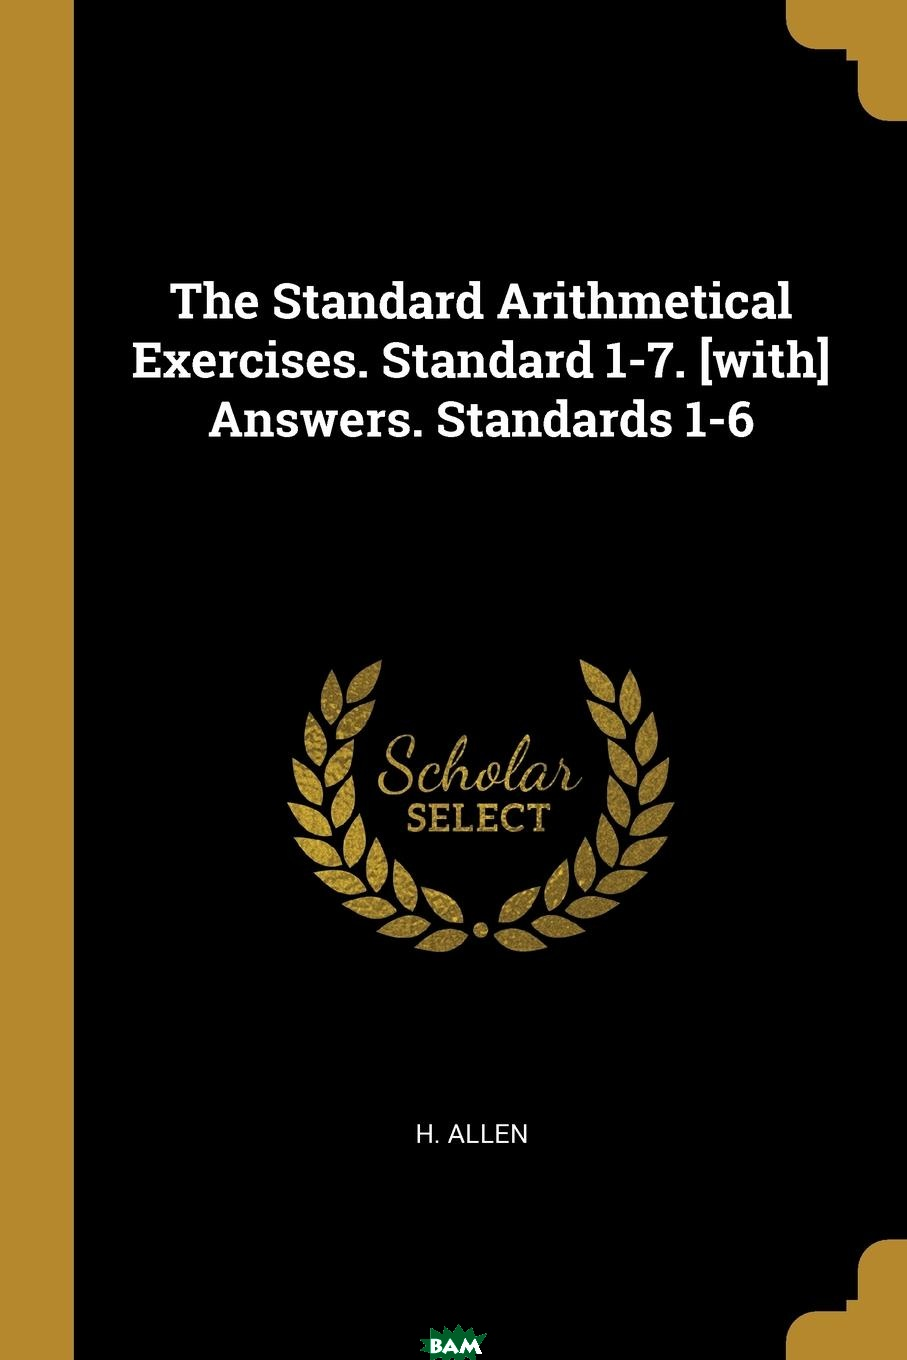 Купить The Standard Arithmetical Exercises. Standard 1-7. .with. Answers. Standards 1-6, H. Allen, 9781011138050